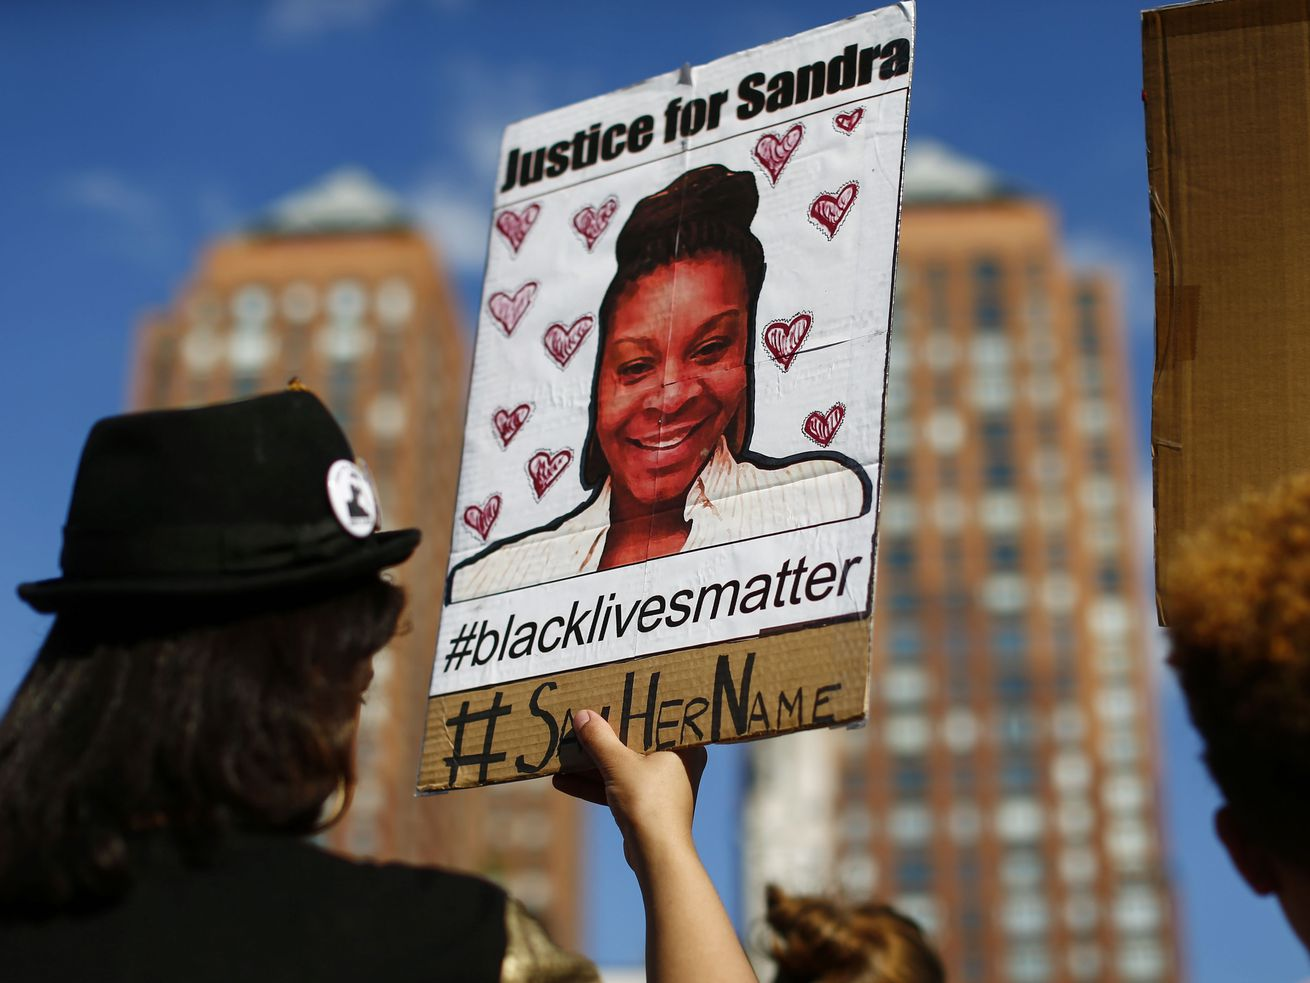 A protester carries a poster honoring Sandra Bland during a memorial rally in 2015. Nearly four years after Bland's death, her sister is speaking out in a new USA Today op-ed.